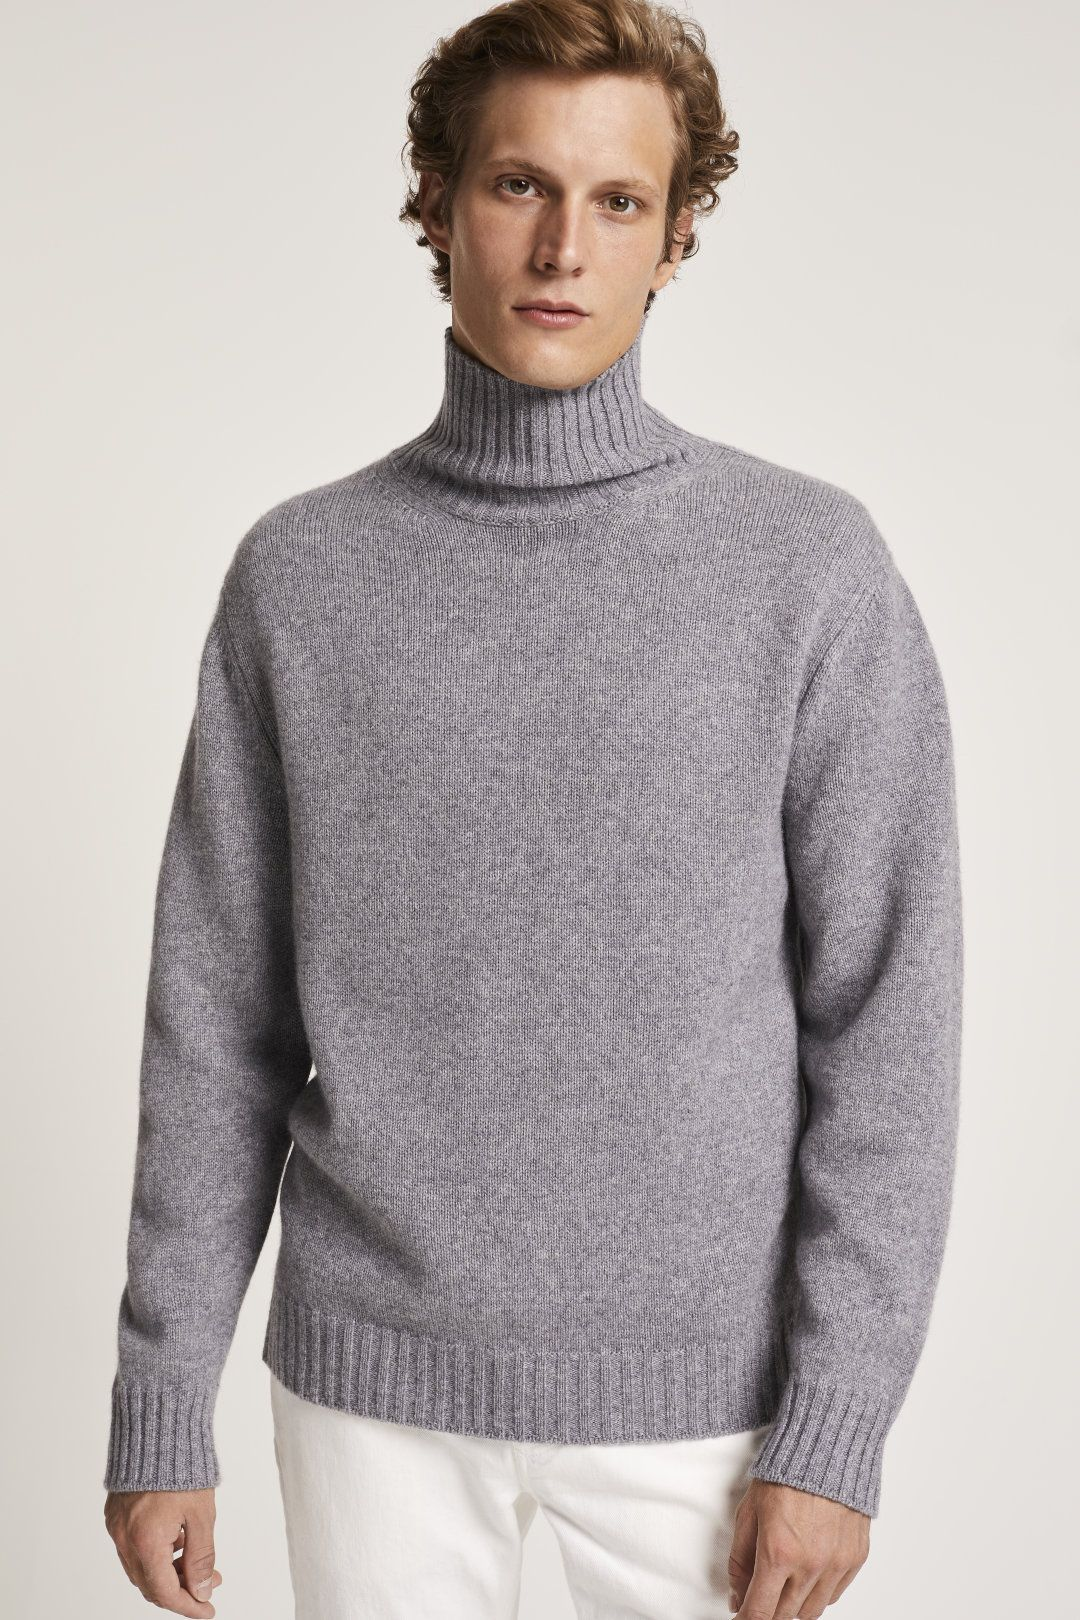 Cashmere Sweater With Stand Up Collar Knitwear Men Sweaters Mens Cashmere [ 1620 x 1080 Pixel ]